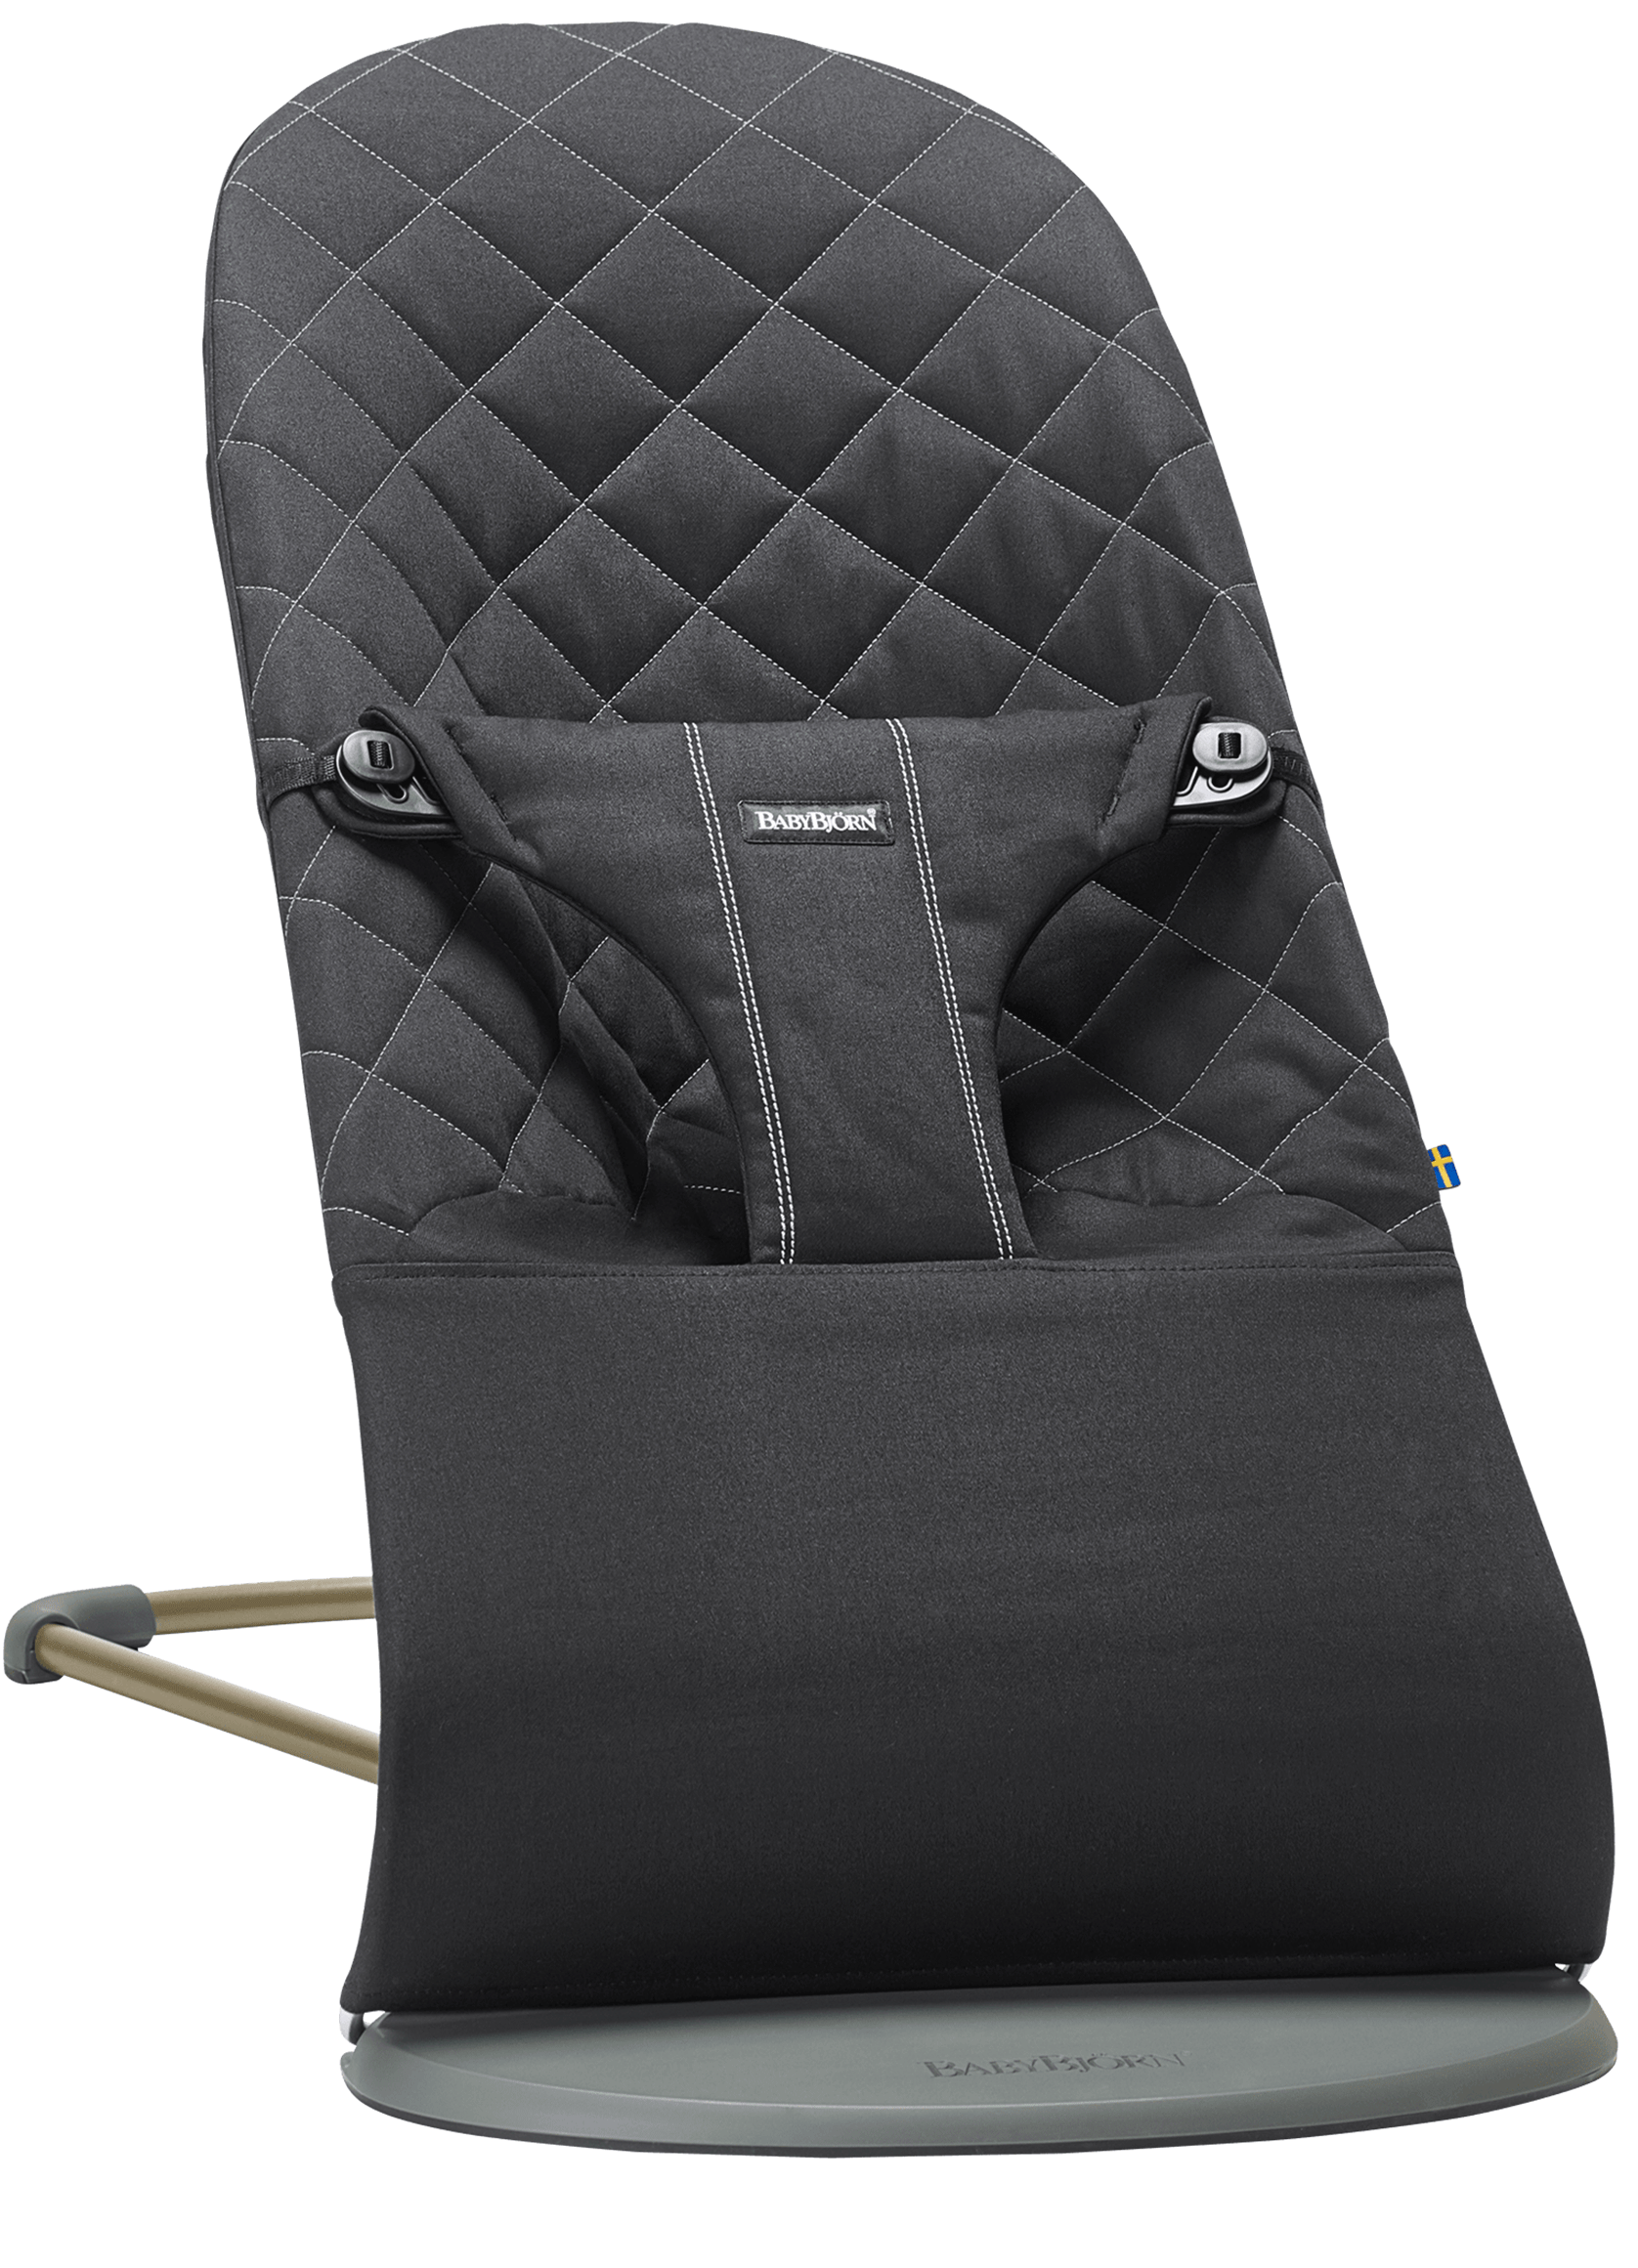 BABYBJORN Bouncer Bliss - Black, Cotton